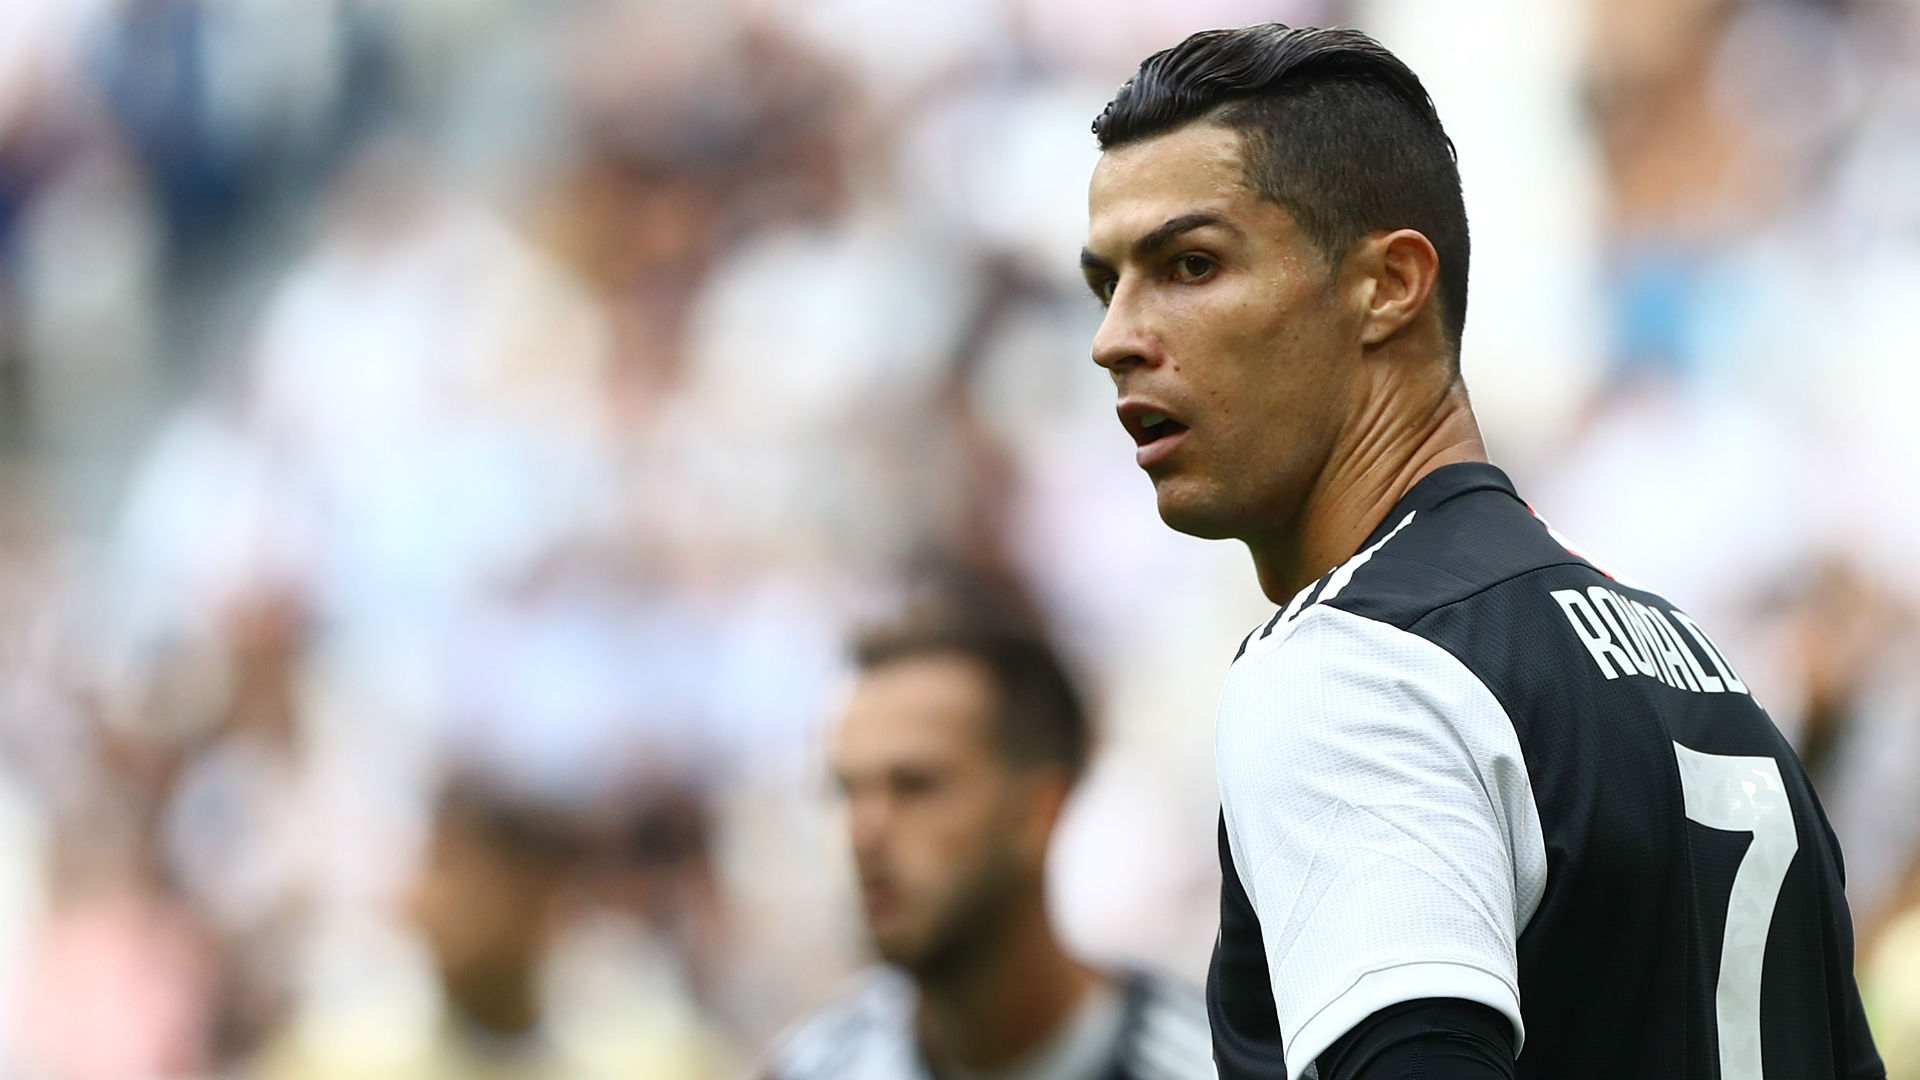 Cristiano Ronaldo suggests a possible date for retirement from football